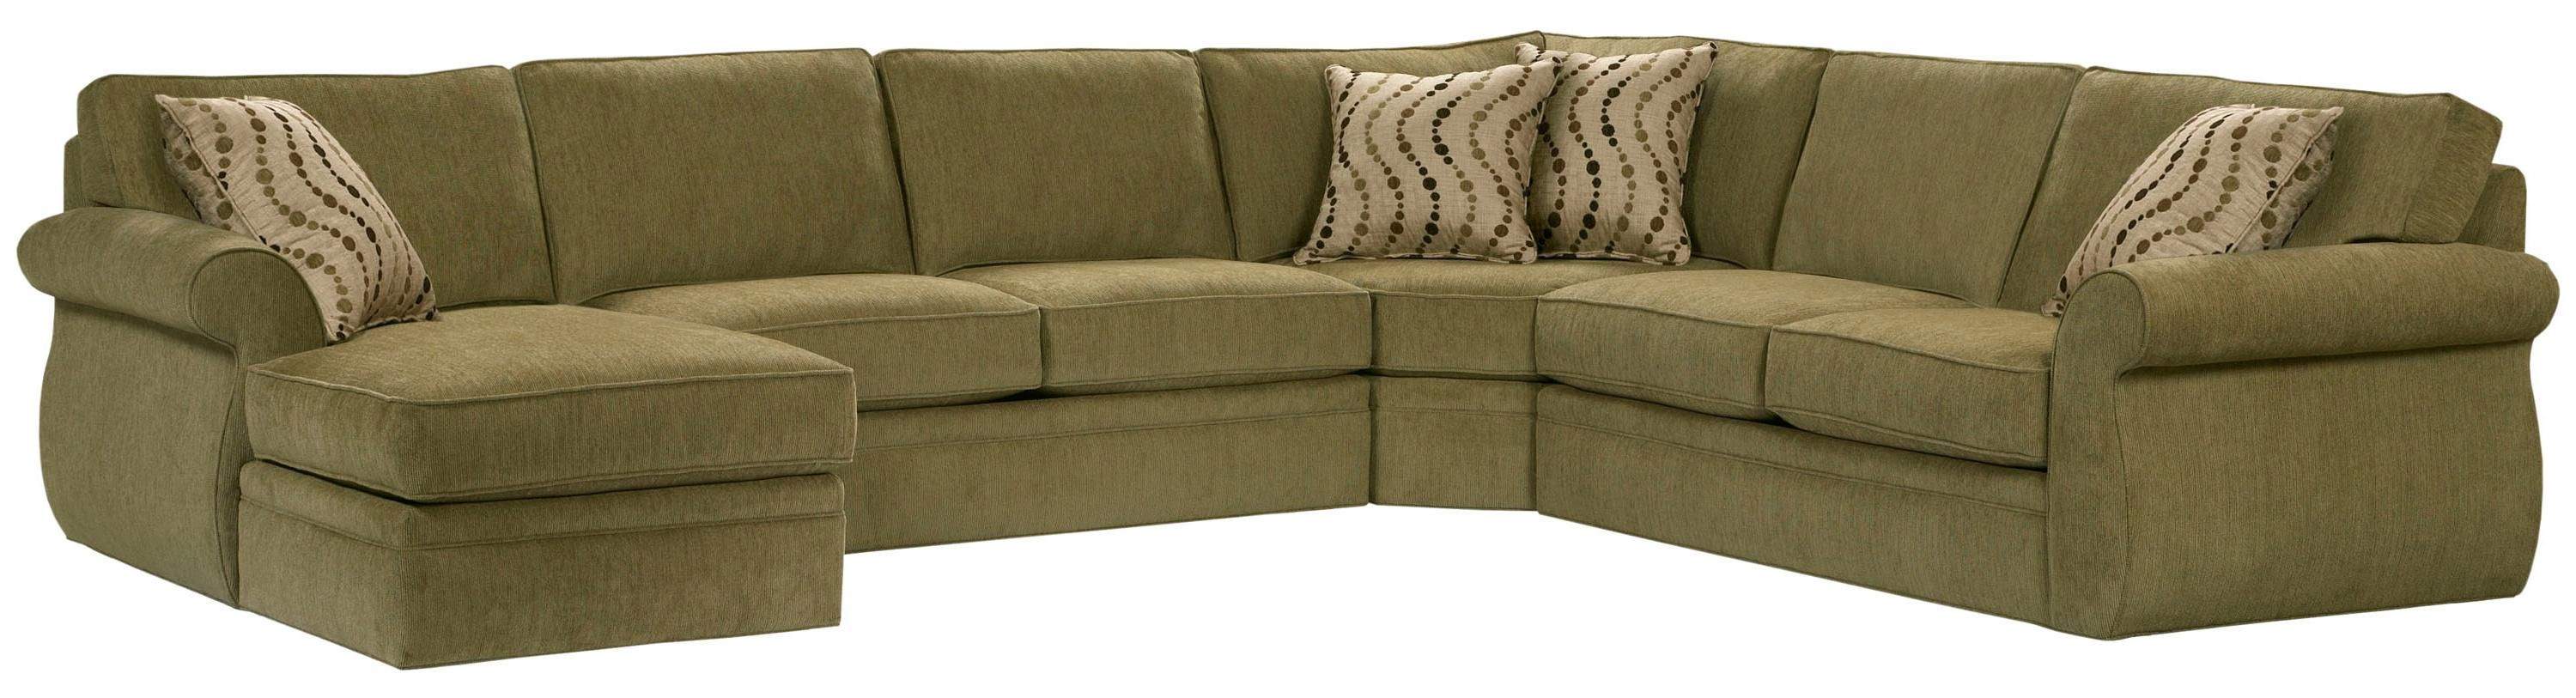 orlando sectional sofa kelsey 6170 veronica left arm facing customizable chaise